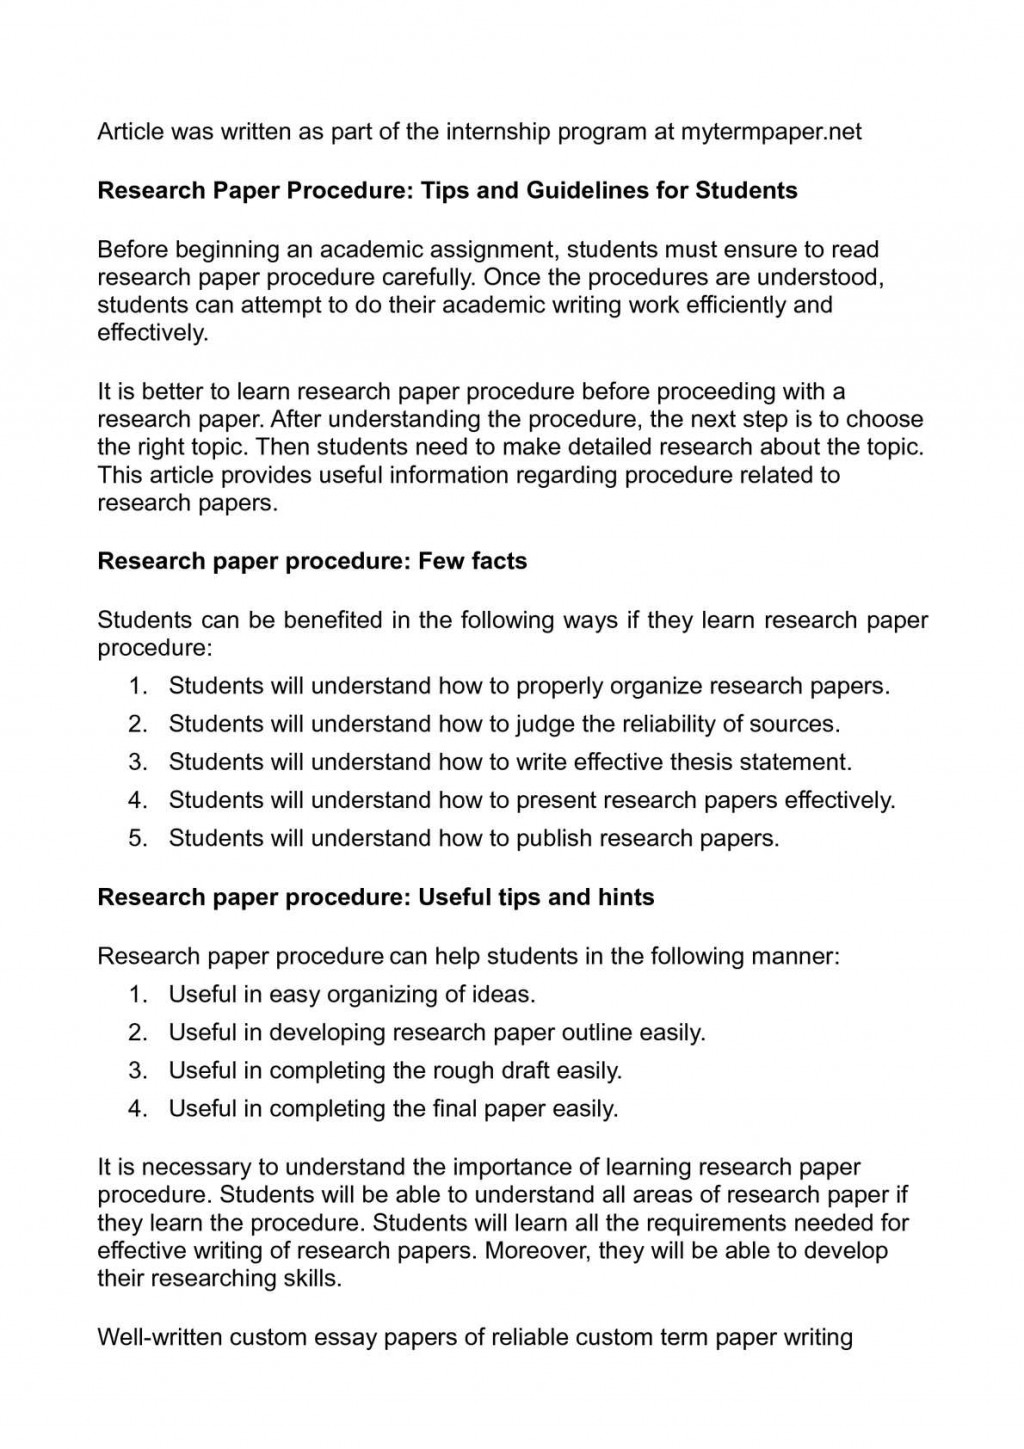 018 How To Do Research Paper Marvelous Write A Good Review Make Ppt For Presentation Notecards Large